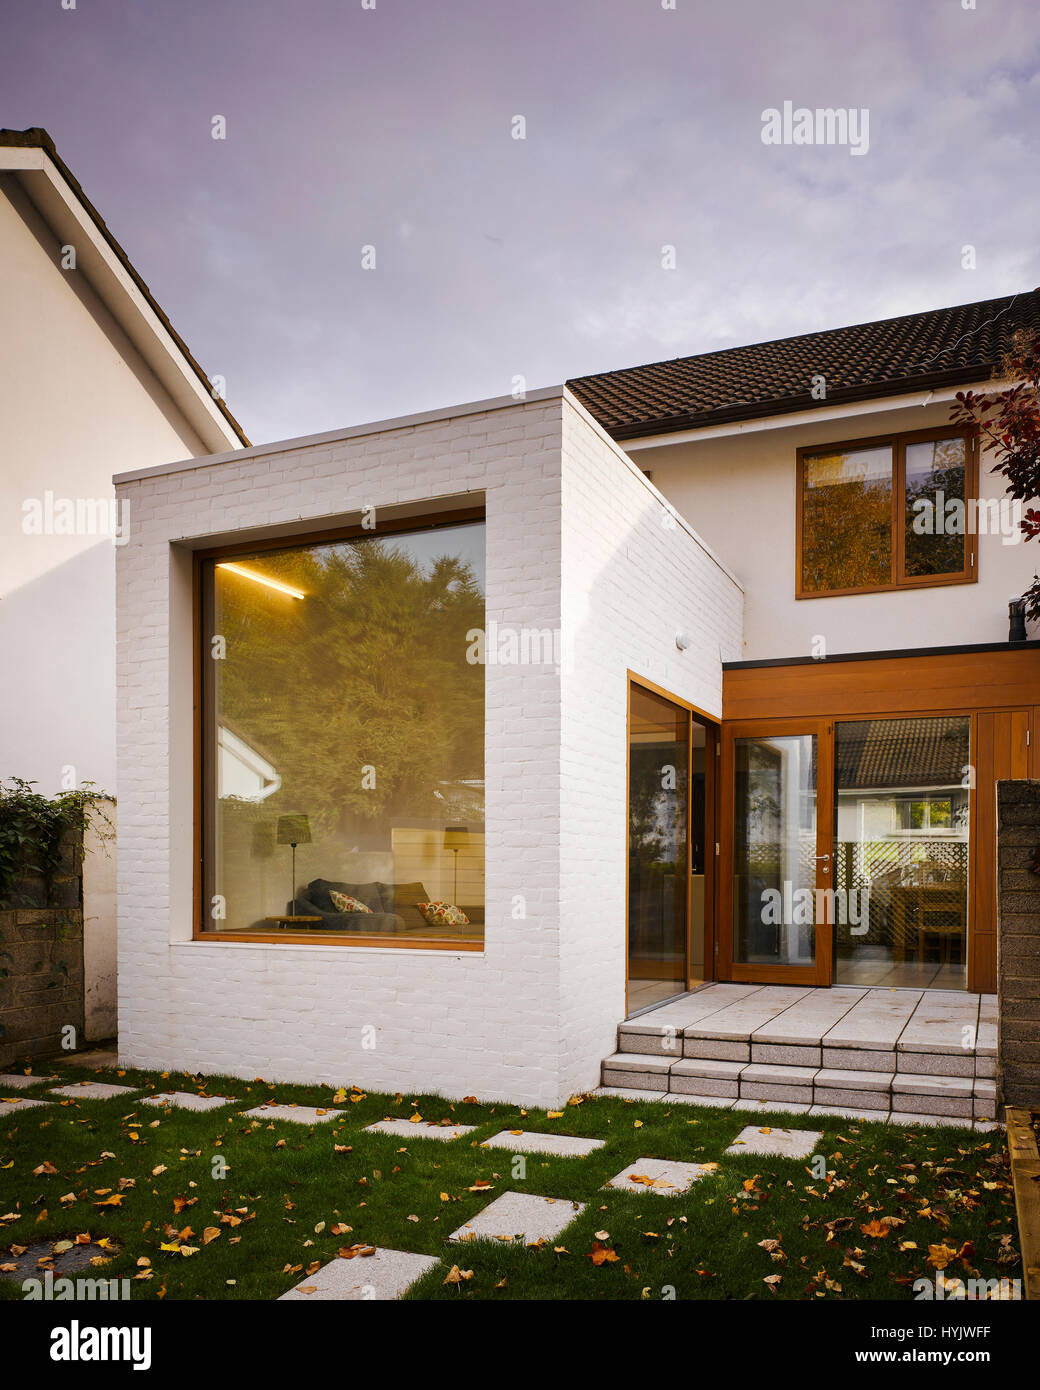 Exterior View Of Extension Showing Window And Glass Doors To House Stillorgan Dublin Ireland Architect Eamon Peregrine 2017